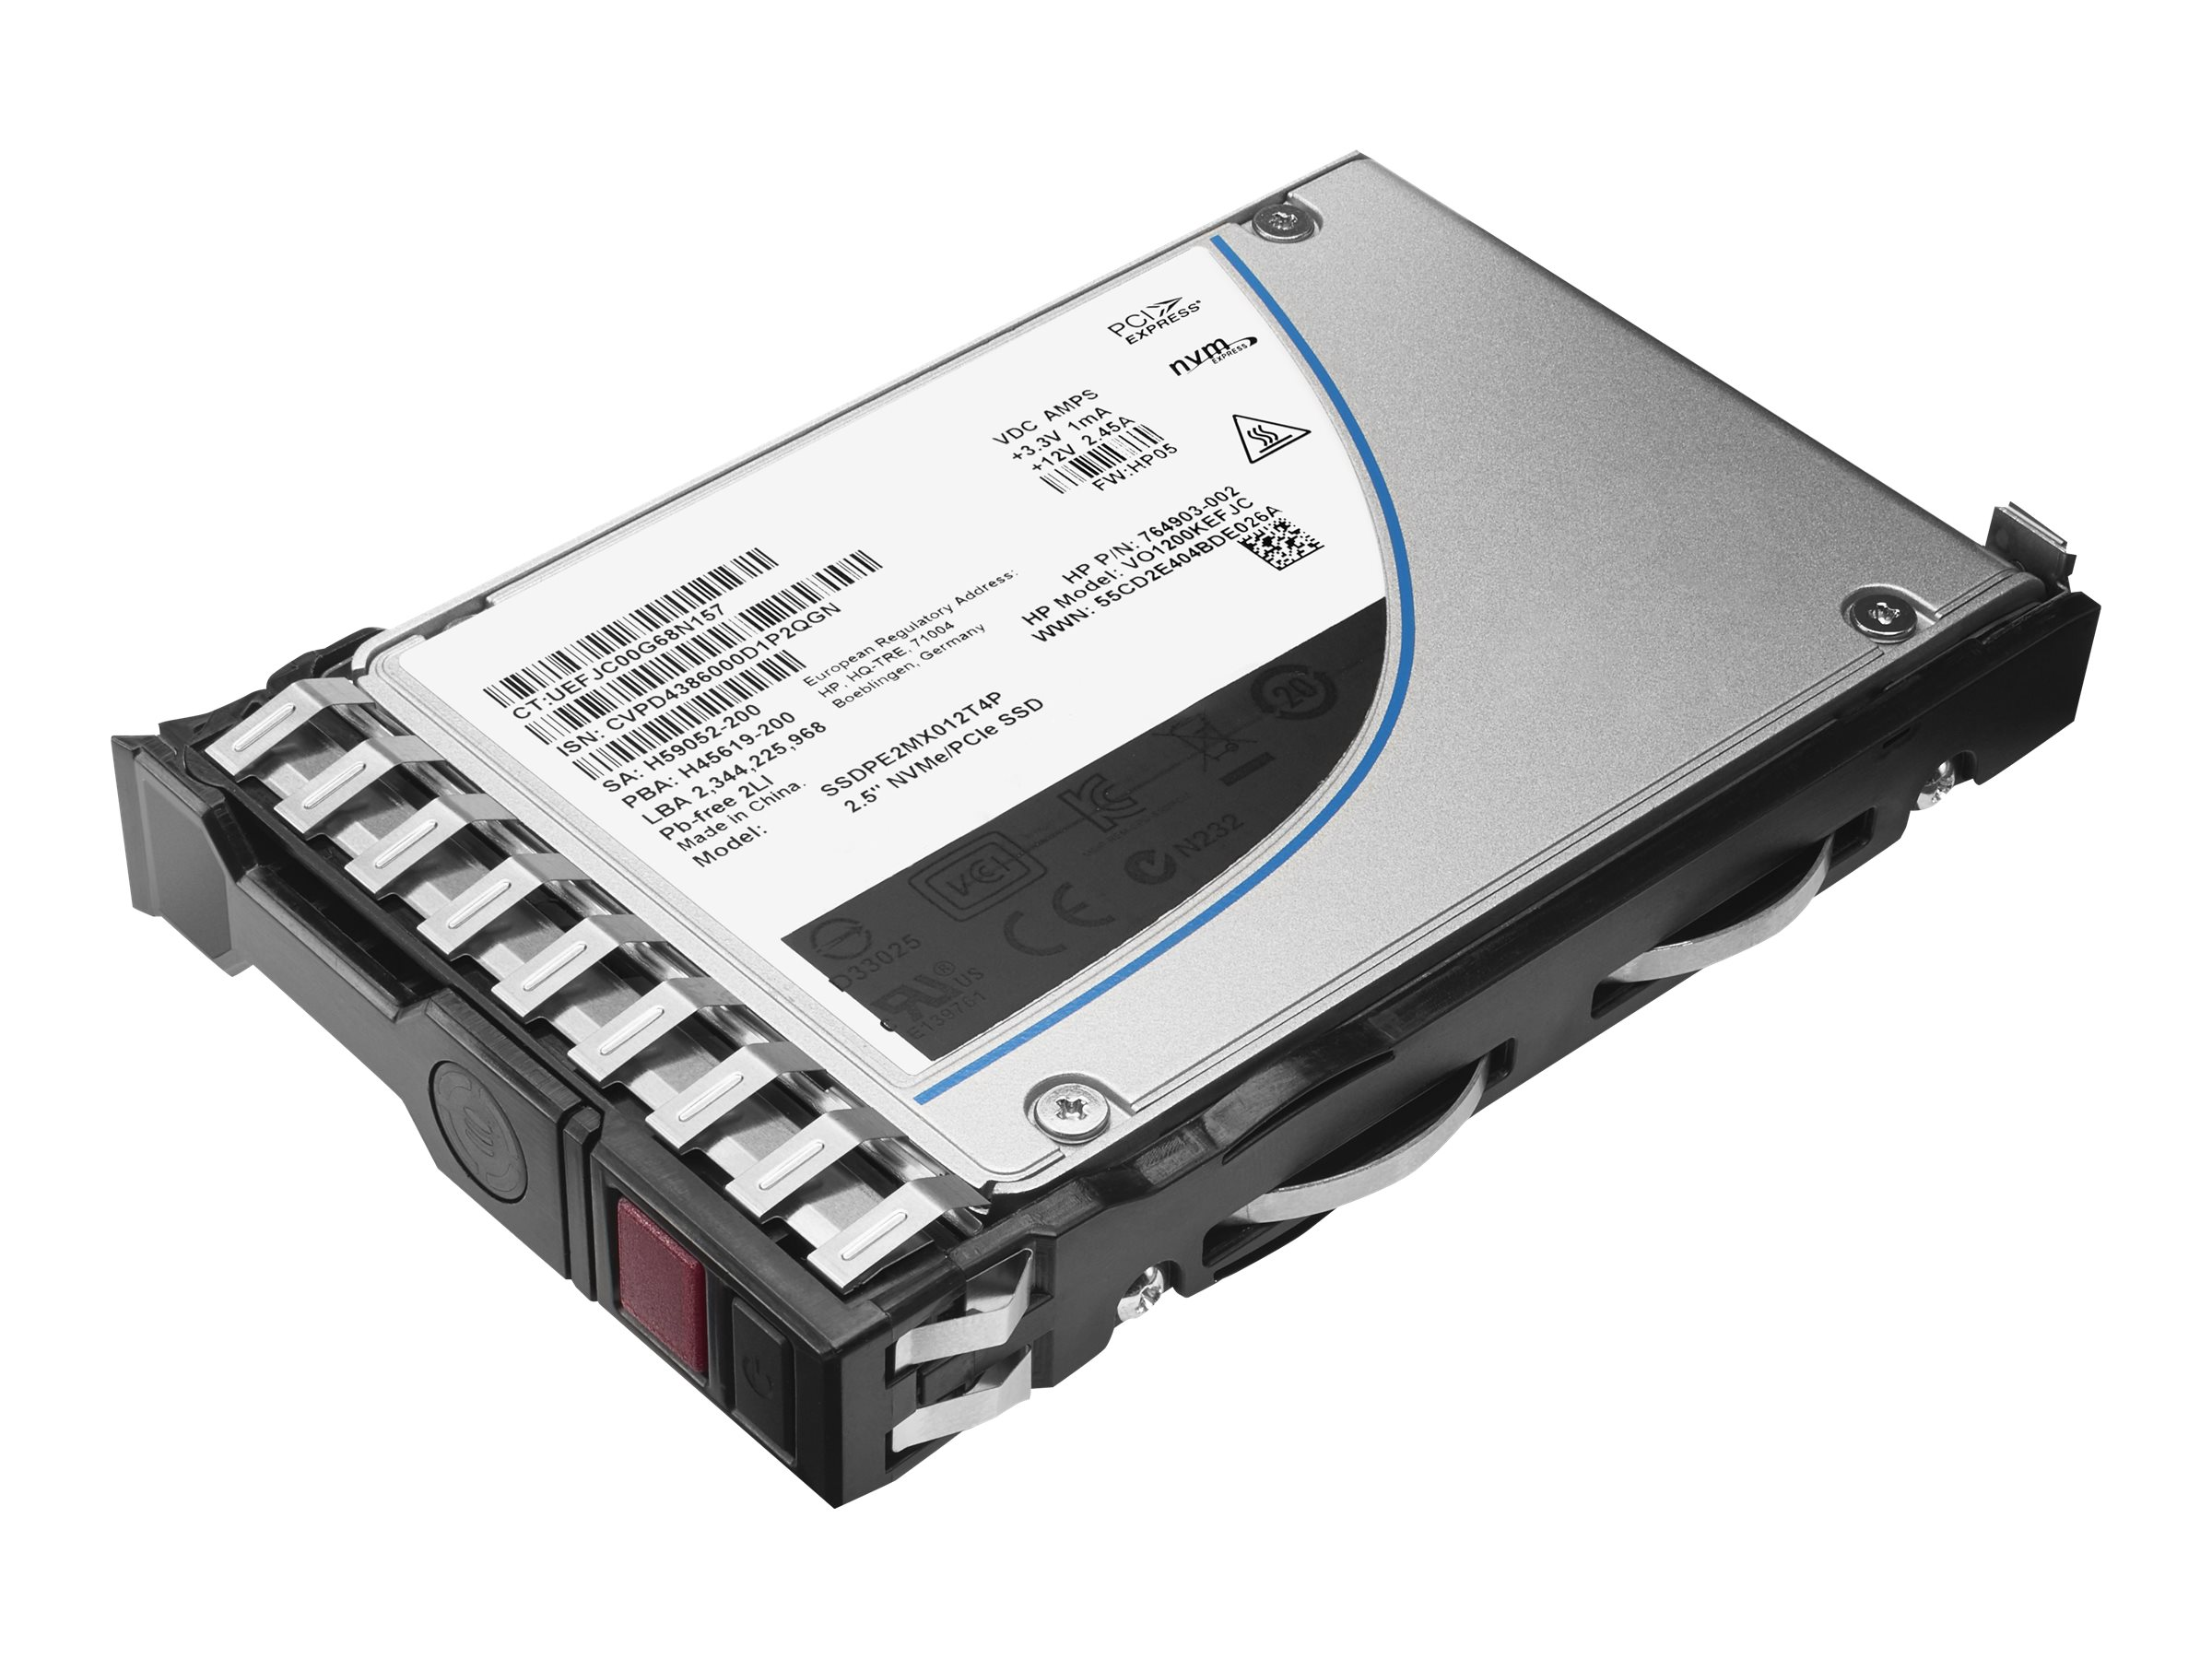 HPE 240GB SATA 6Gb s Value Endurance 2.5 SC Enterprise Value M1 Solid State Drive, 764925-B21